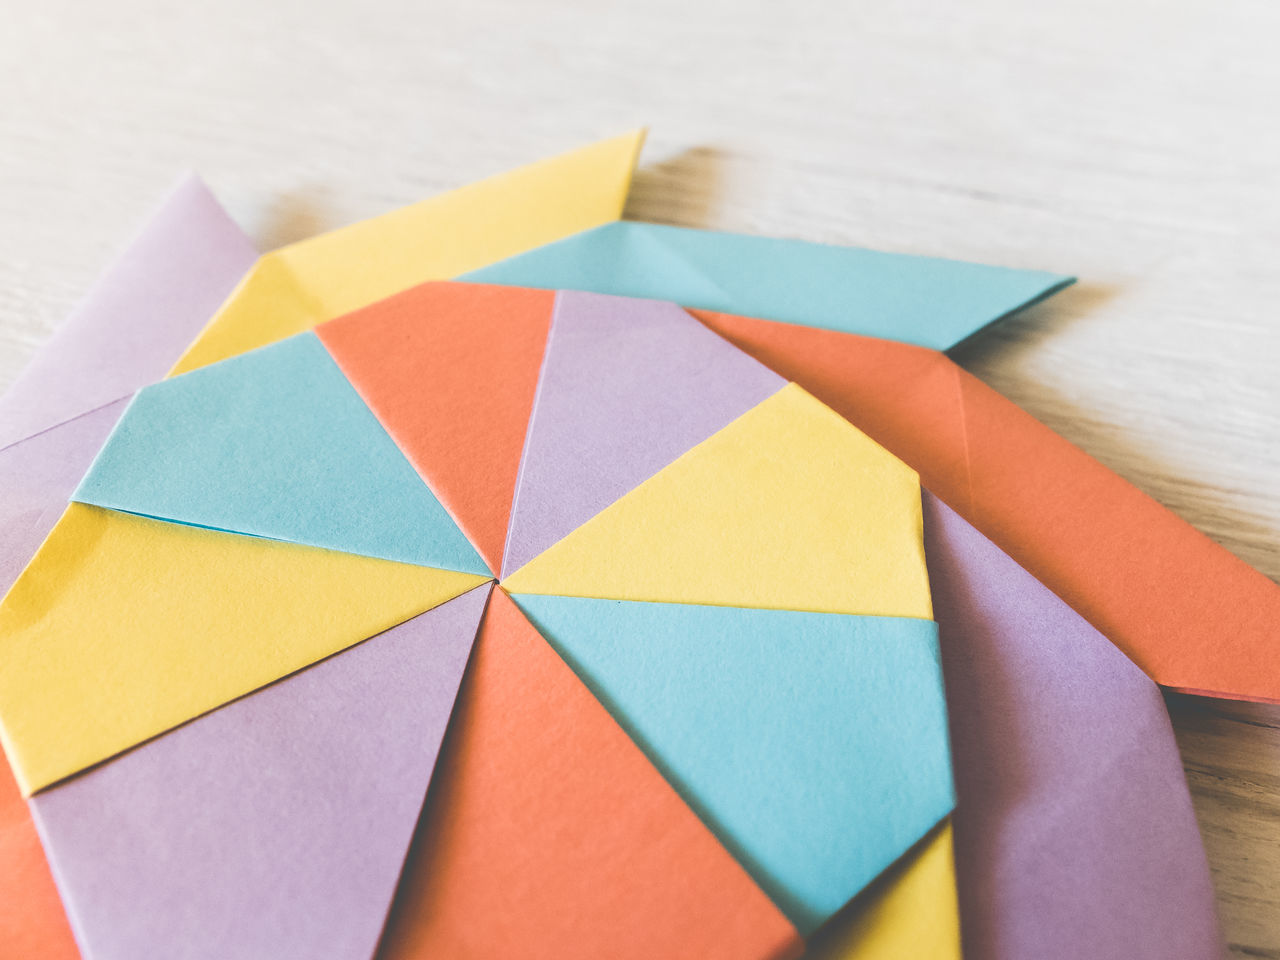 Close-Up High Angle View Of Paper Folding